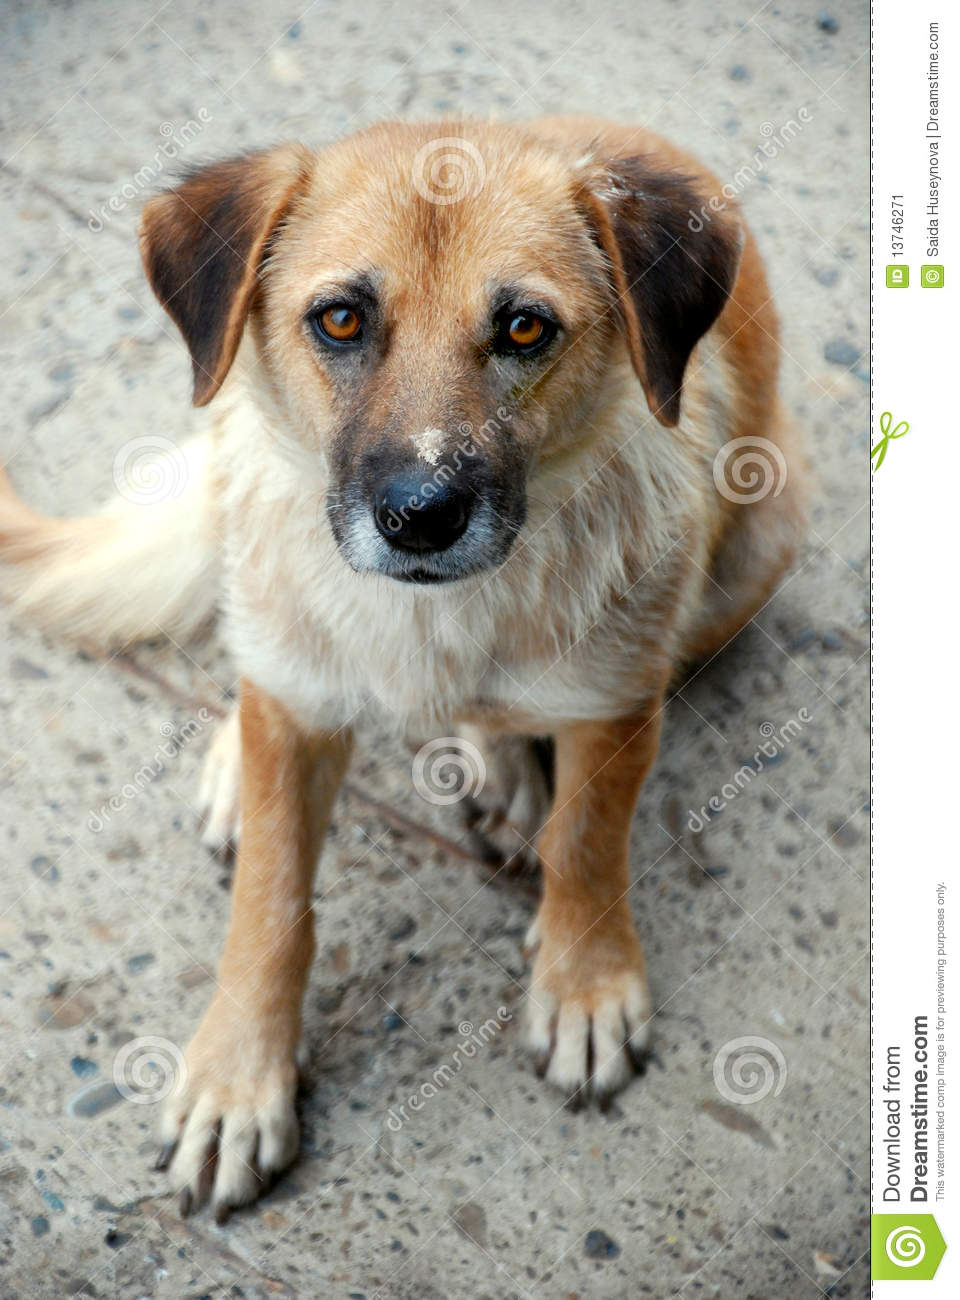 Homeless Dog Stock Image - Image: 13746271